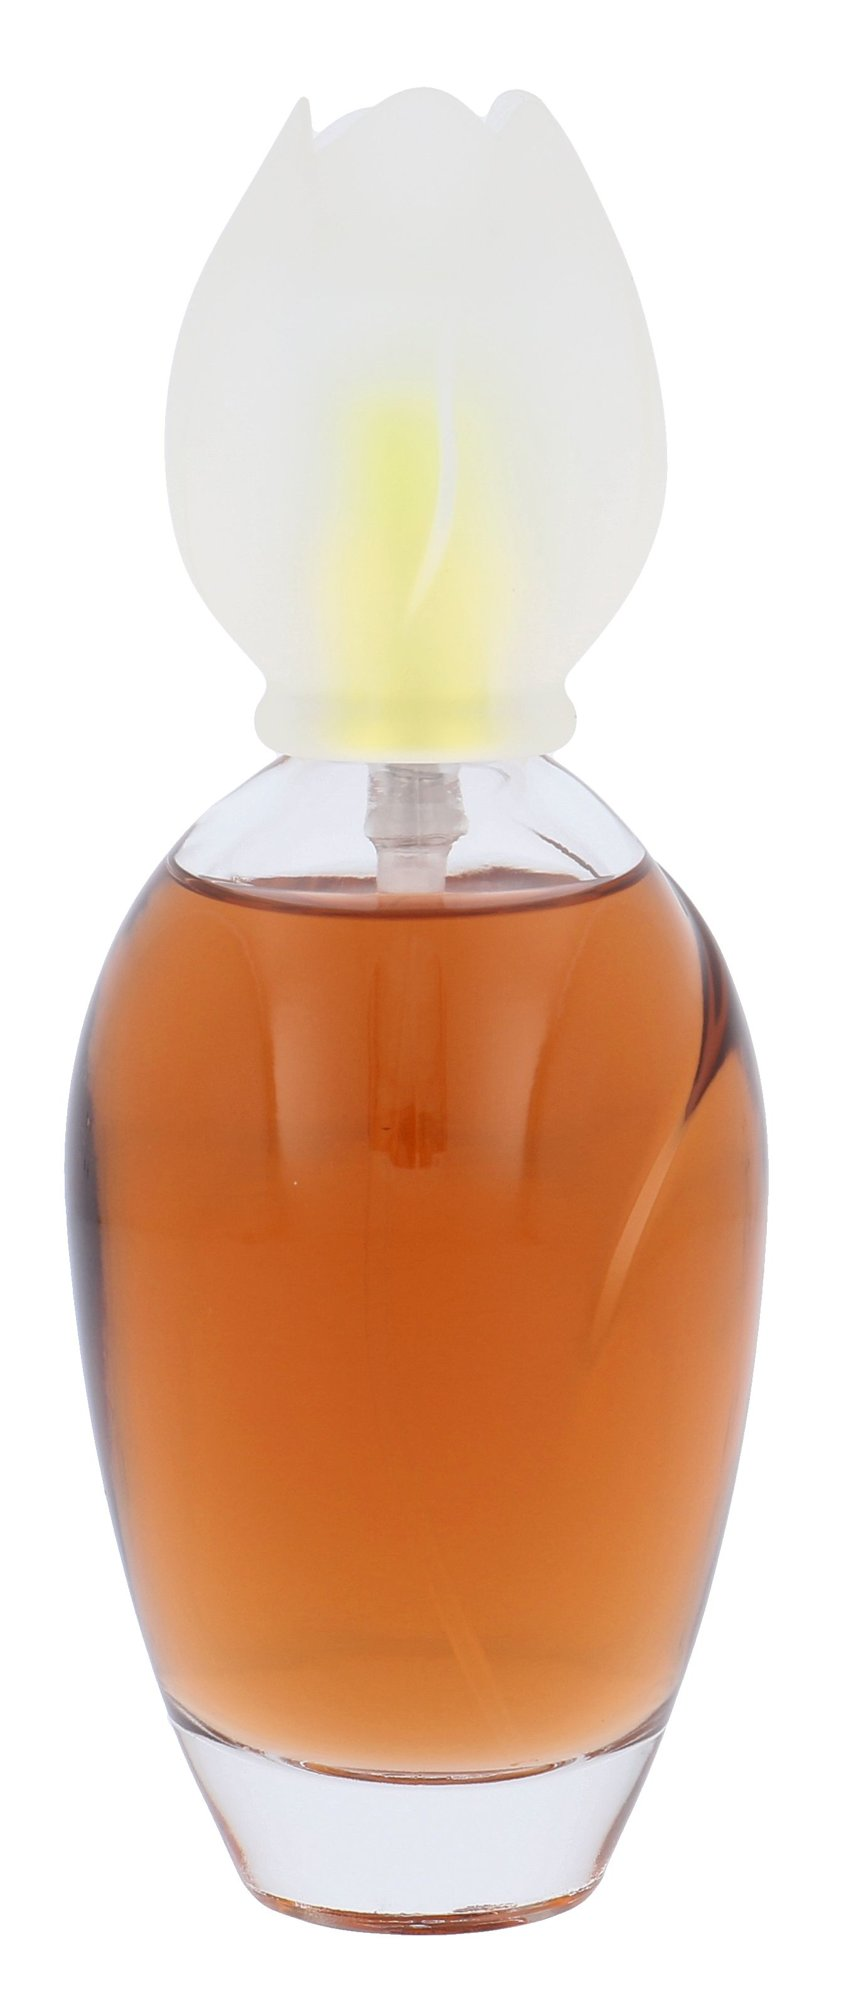 Chloe Chloe Narcisse EDT 100ml